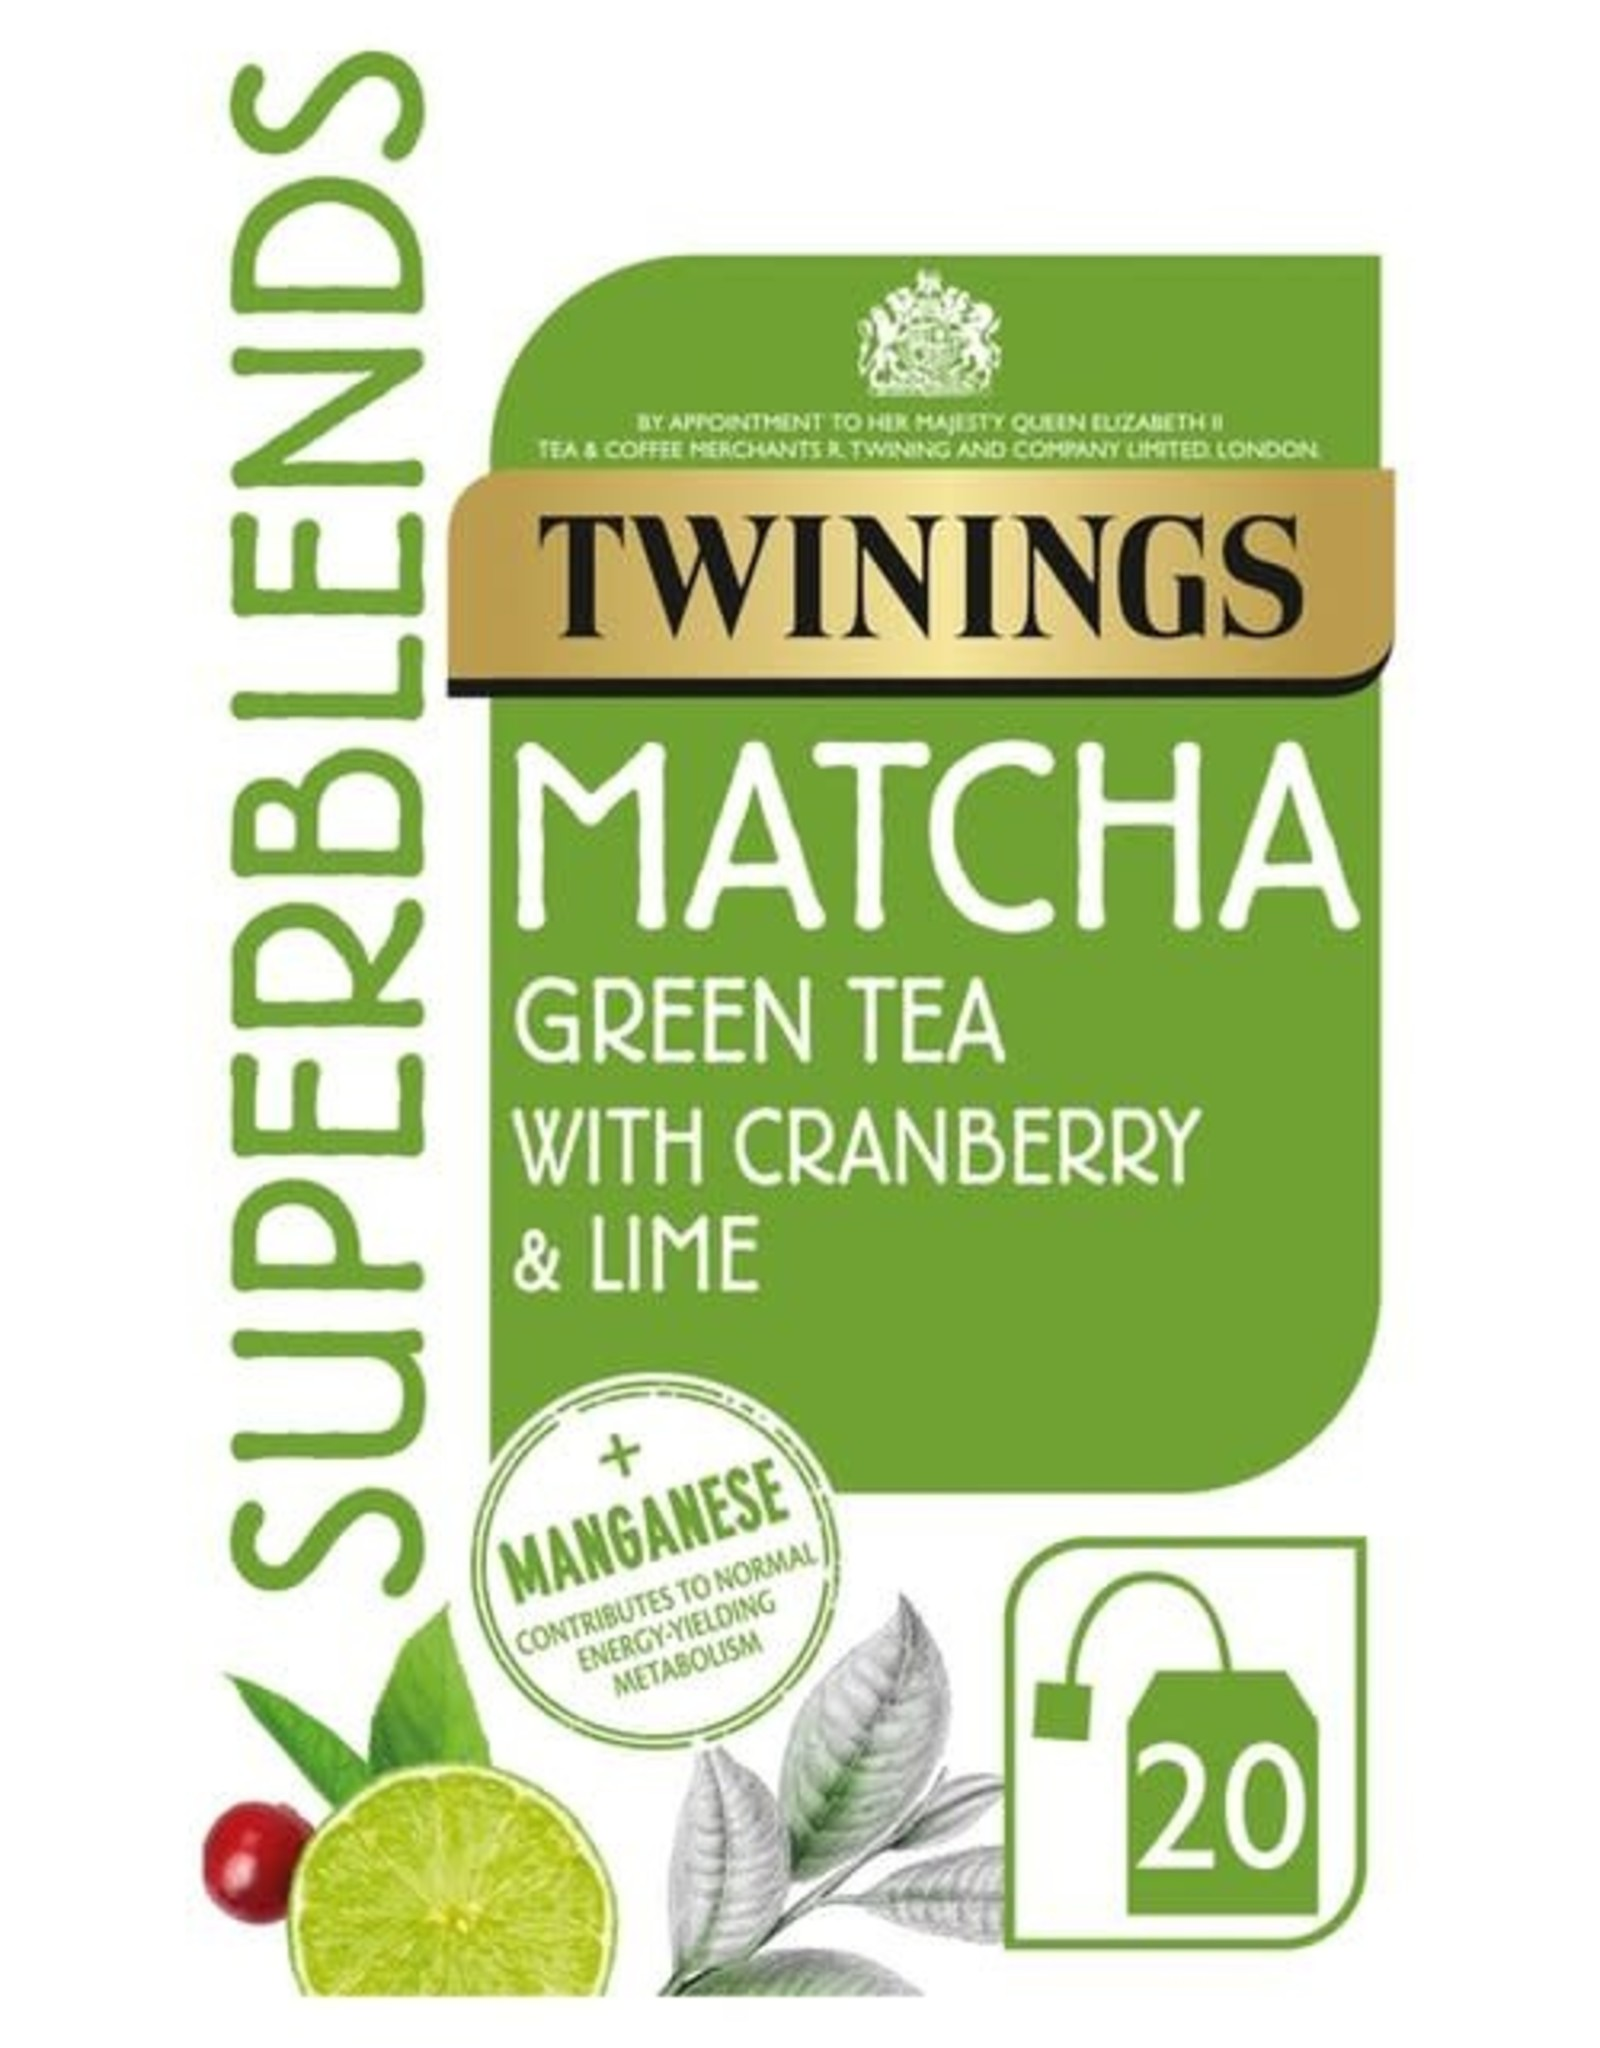 Twinings Twinings Matcha with Cranberry & Lime 20